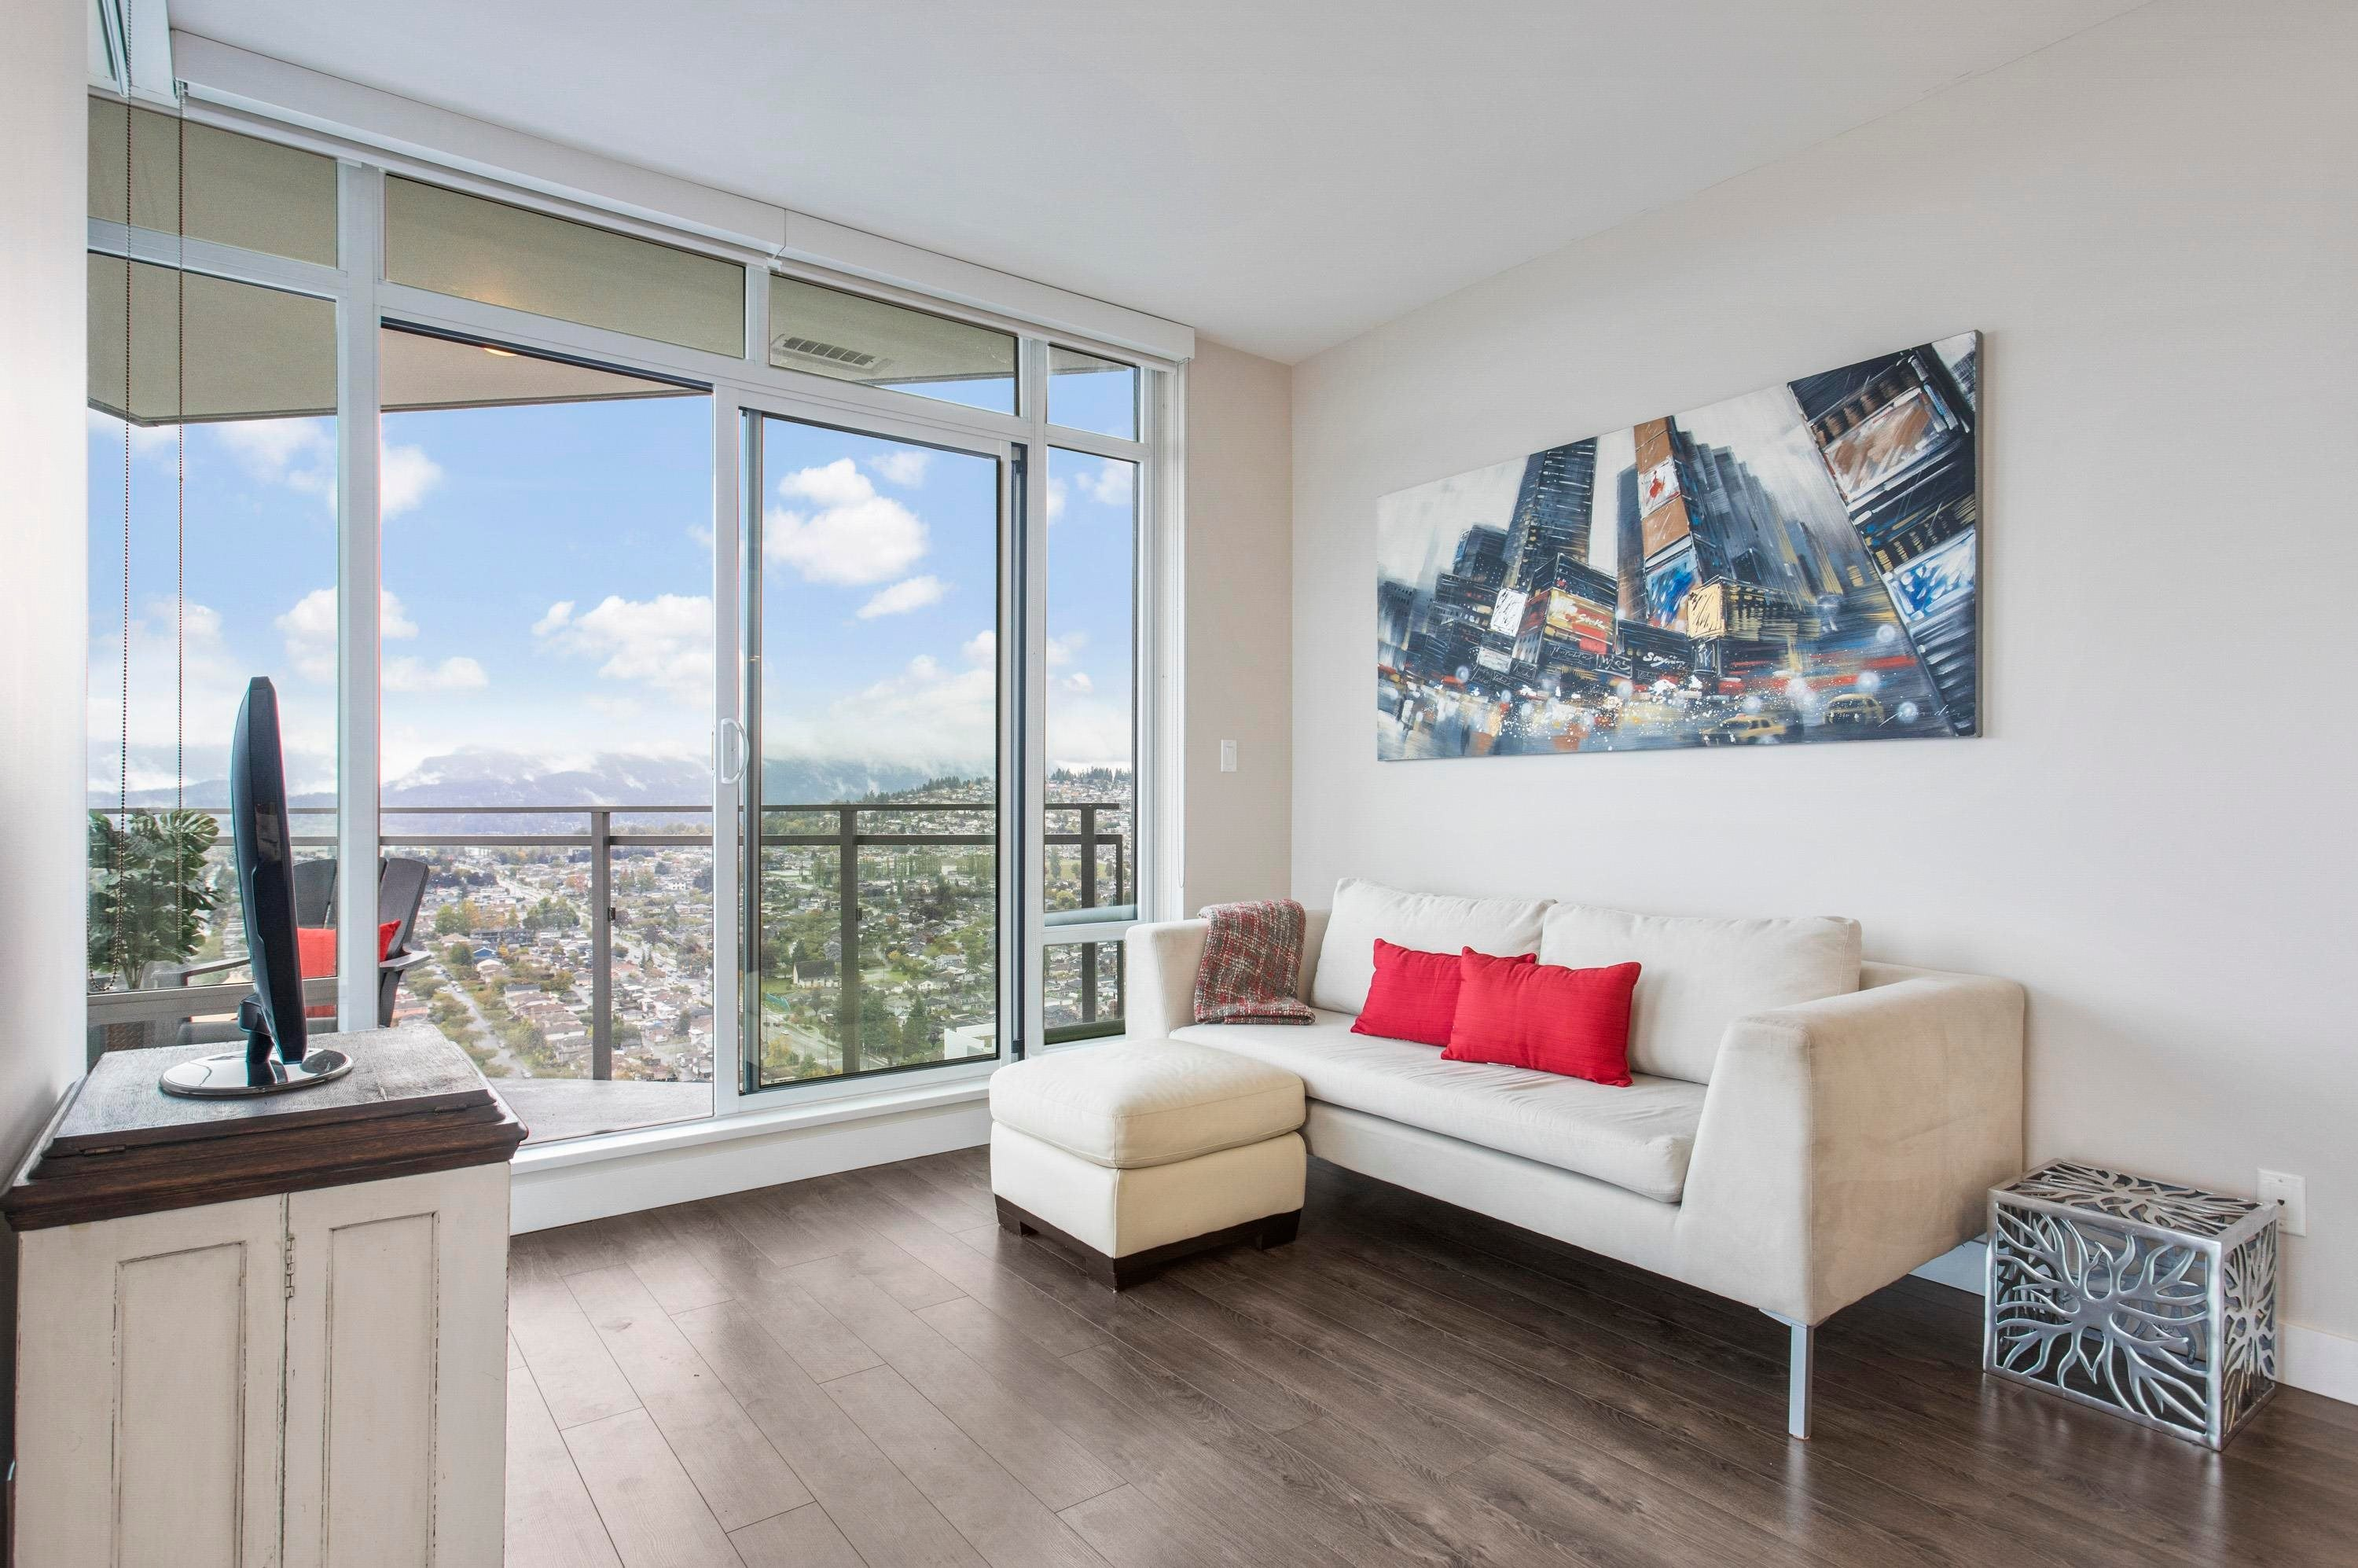 4002 2008 ROSSER AVENUE - Brentwood Park Apartment/Condo for sale, 2 Bedrooms (R2625548) - #15